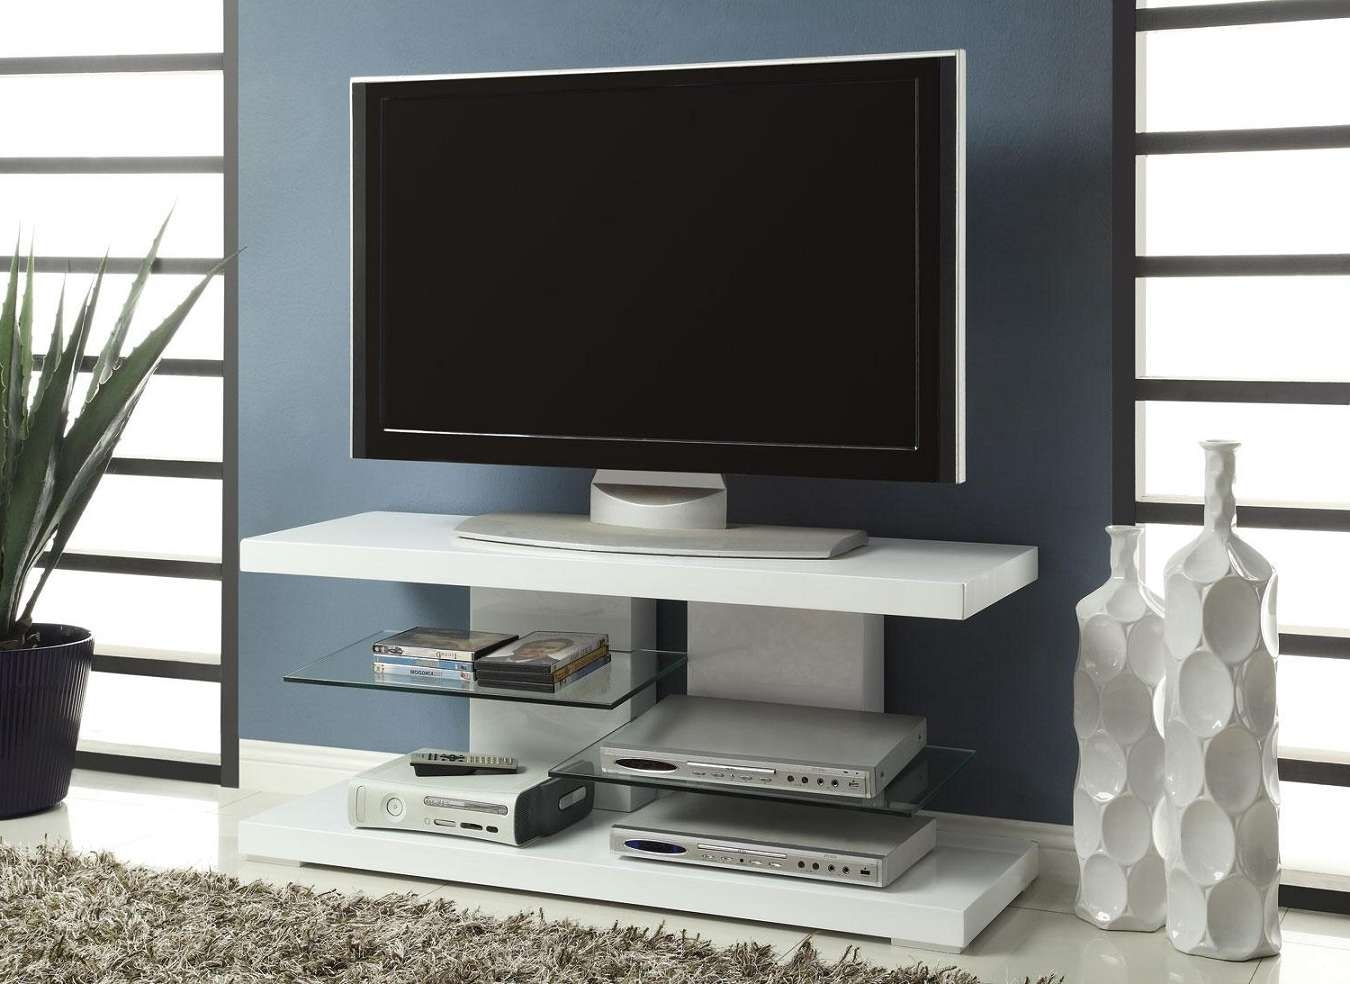 White Painted Plywood Flat Screen Tv Stand With Tempered Glass With Regard To Modern Tv Cabinets For Flat Screens (View 13 of 20)